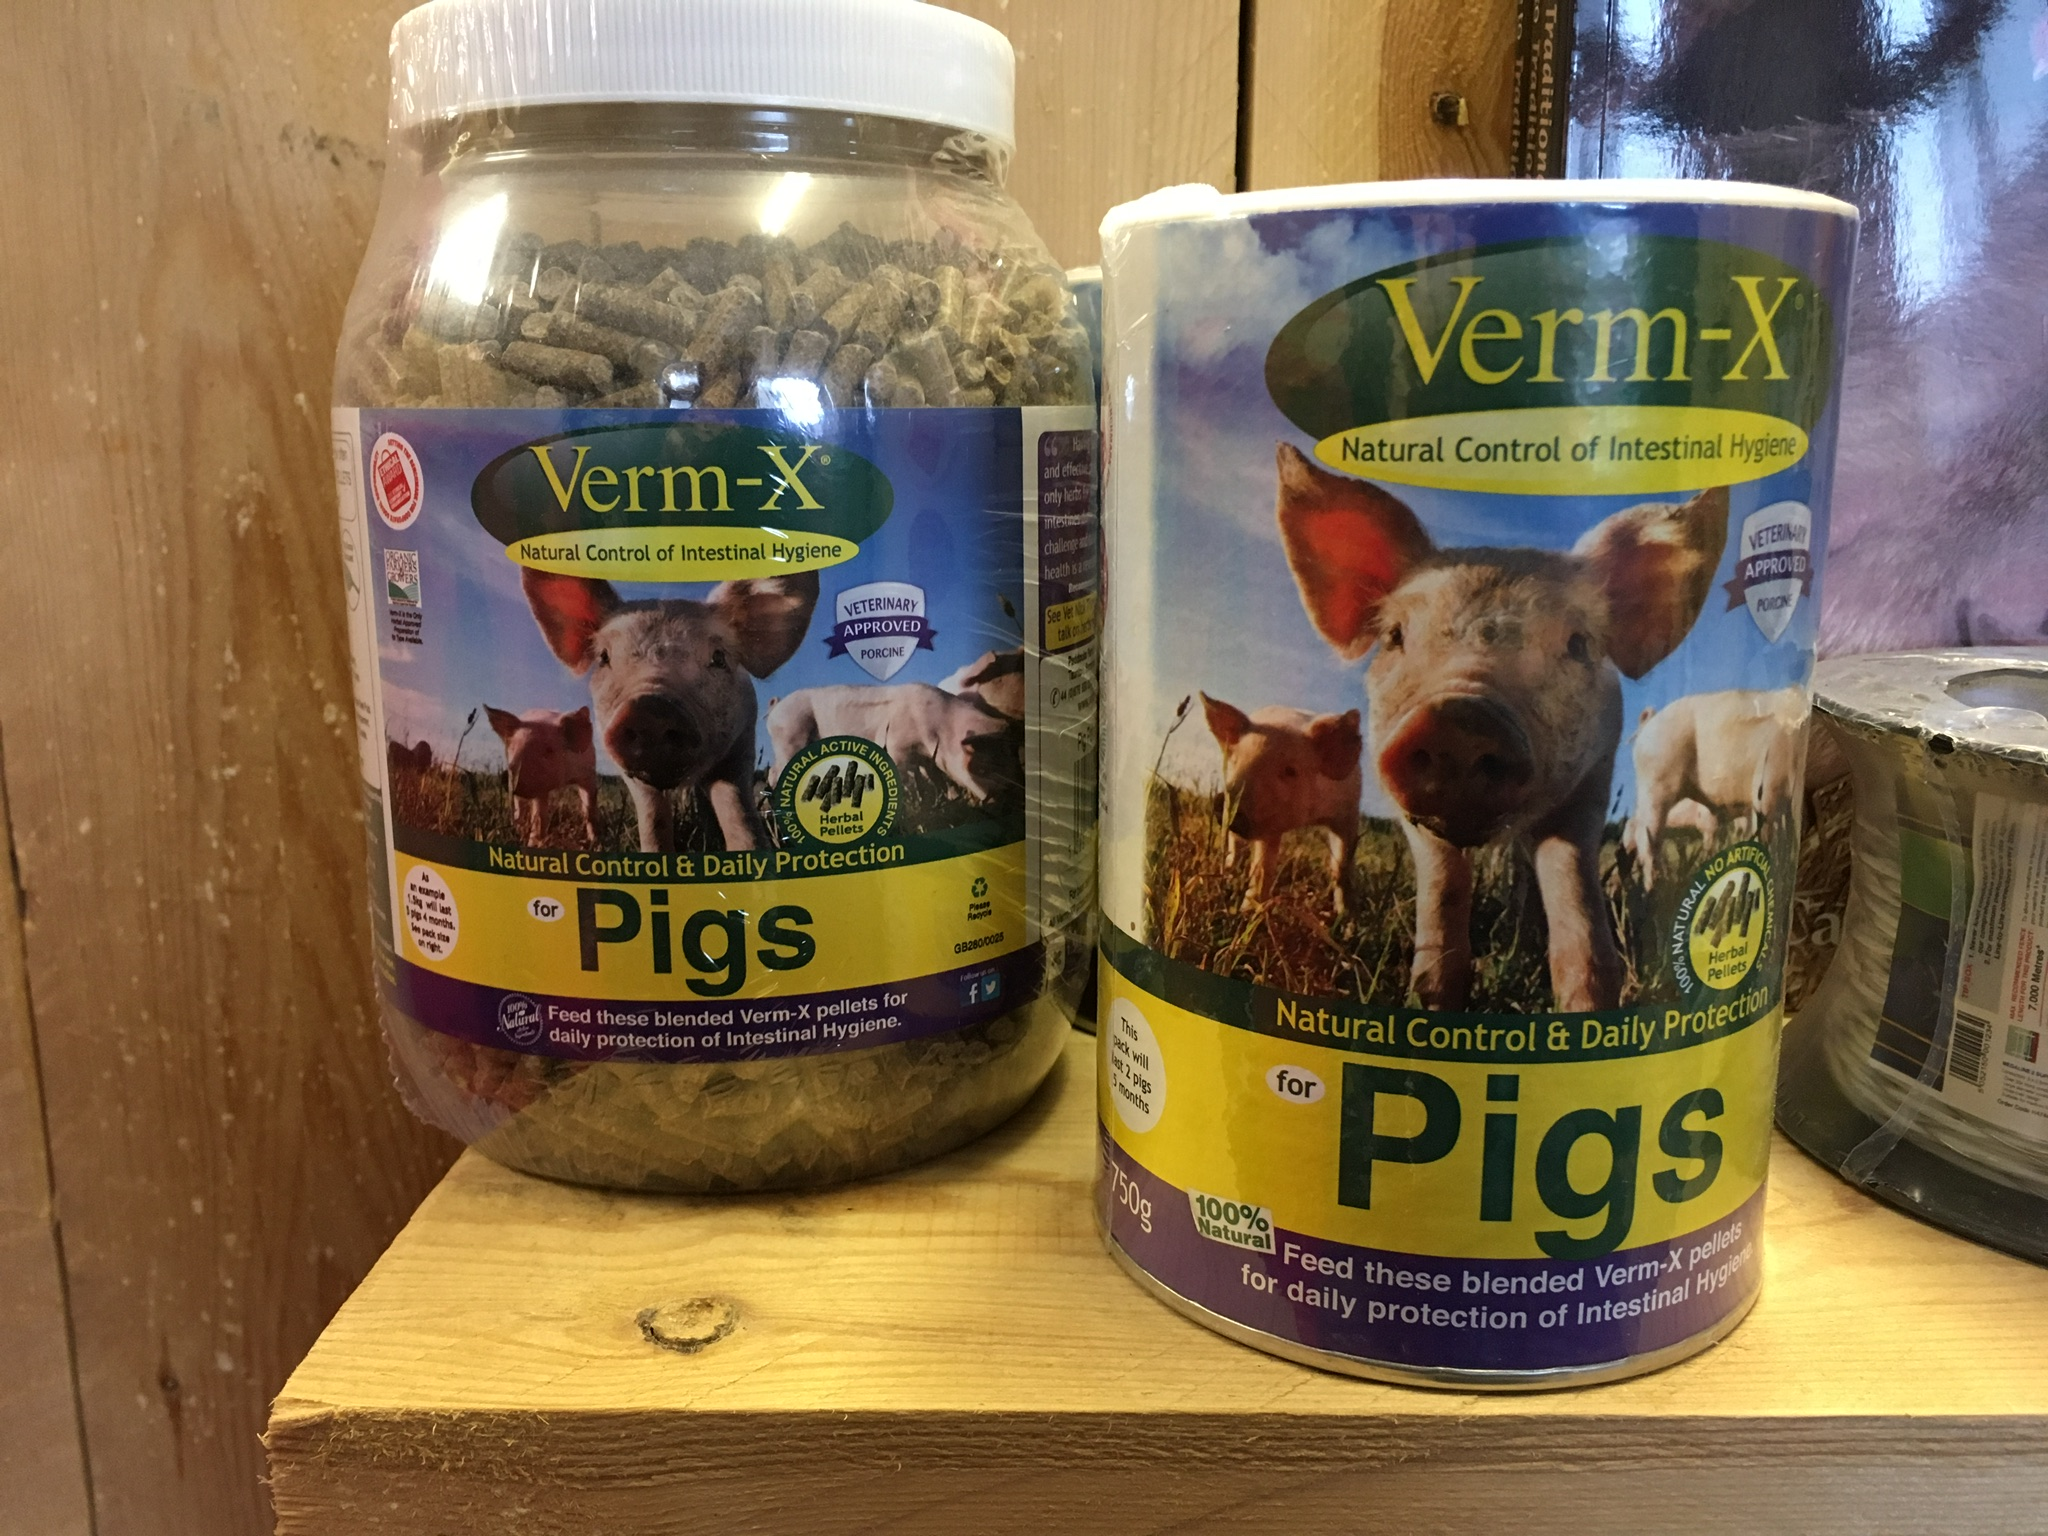 Verm-X for Keeping Pigs